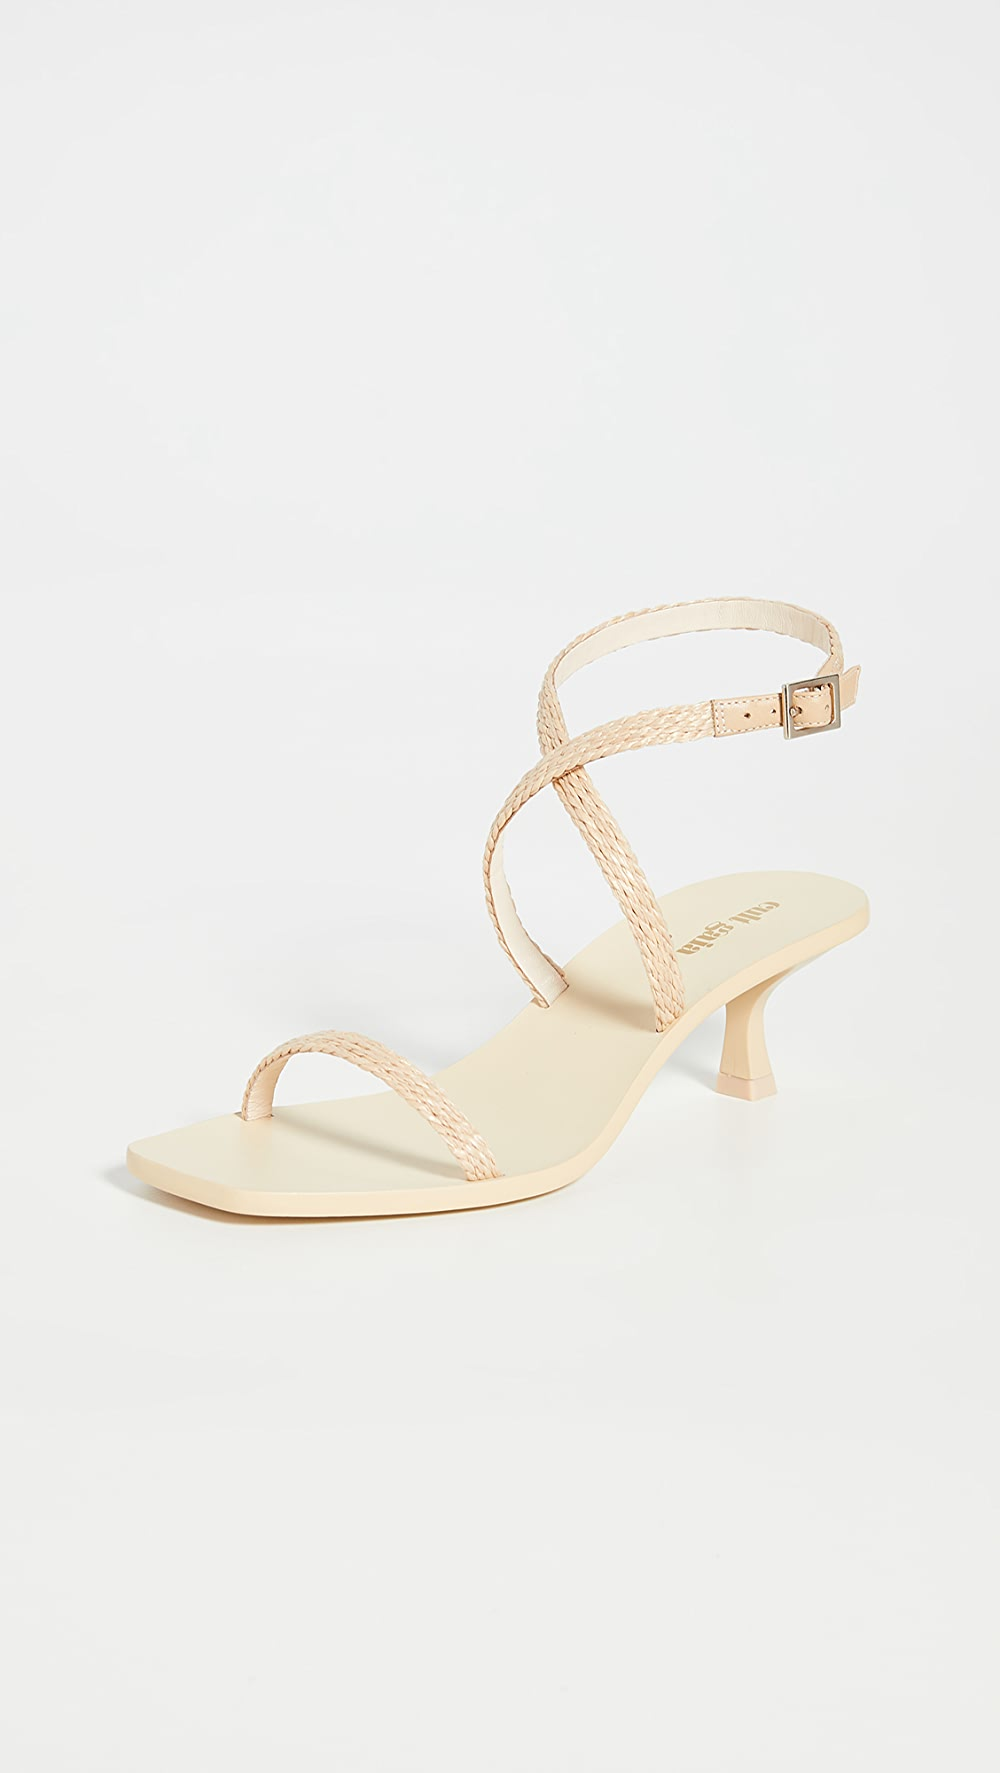 Adroit Cult Gaia - Banu Sandals Volume Large